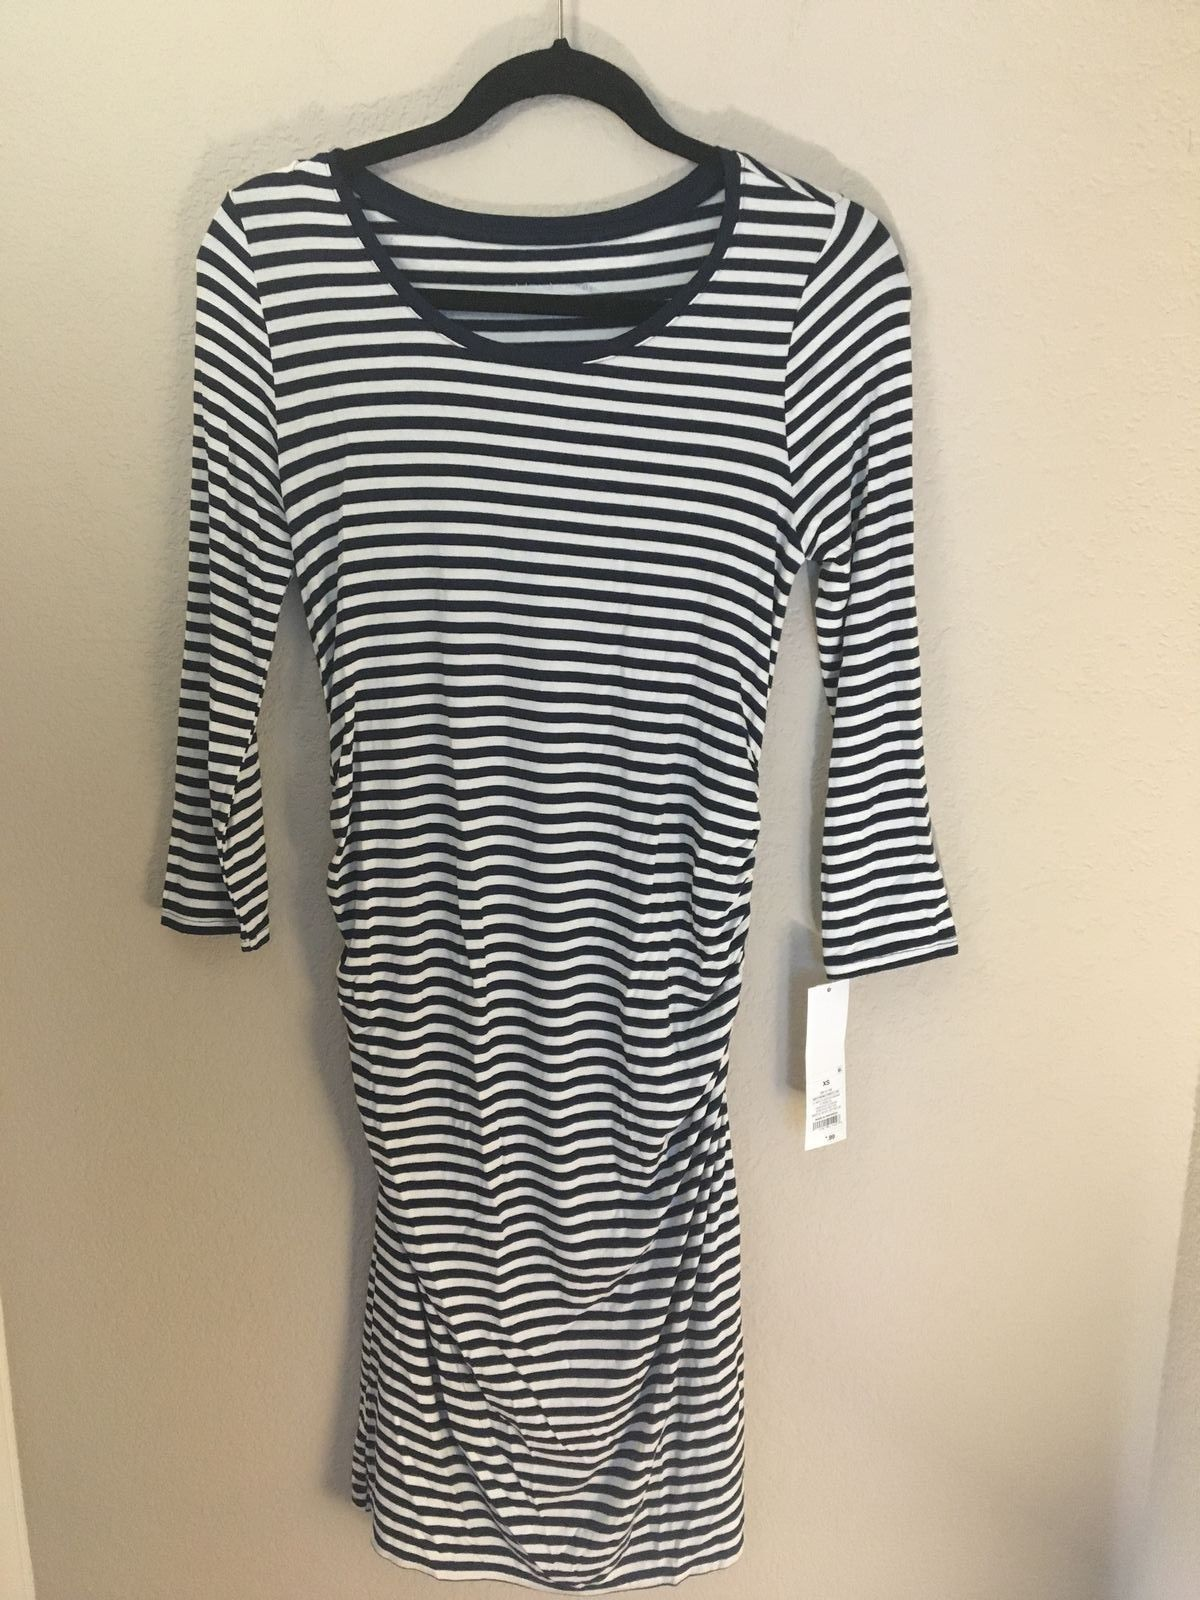 fb742a4542a06 Liz Lange Maternity Navy Ivory Striped Dress and 45 similar items. 57